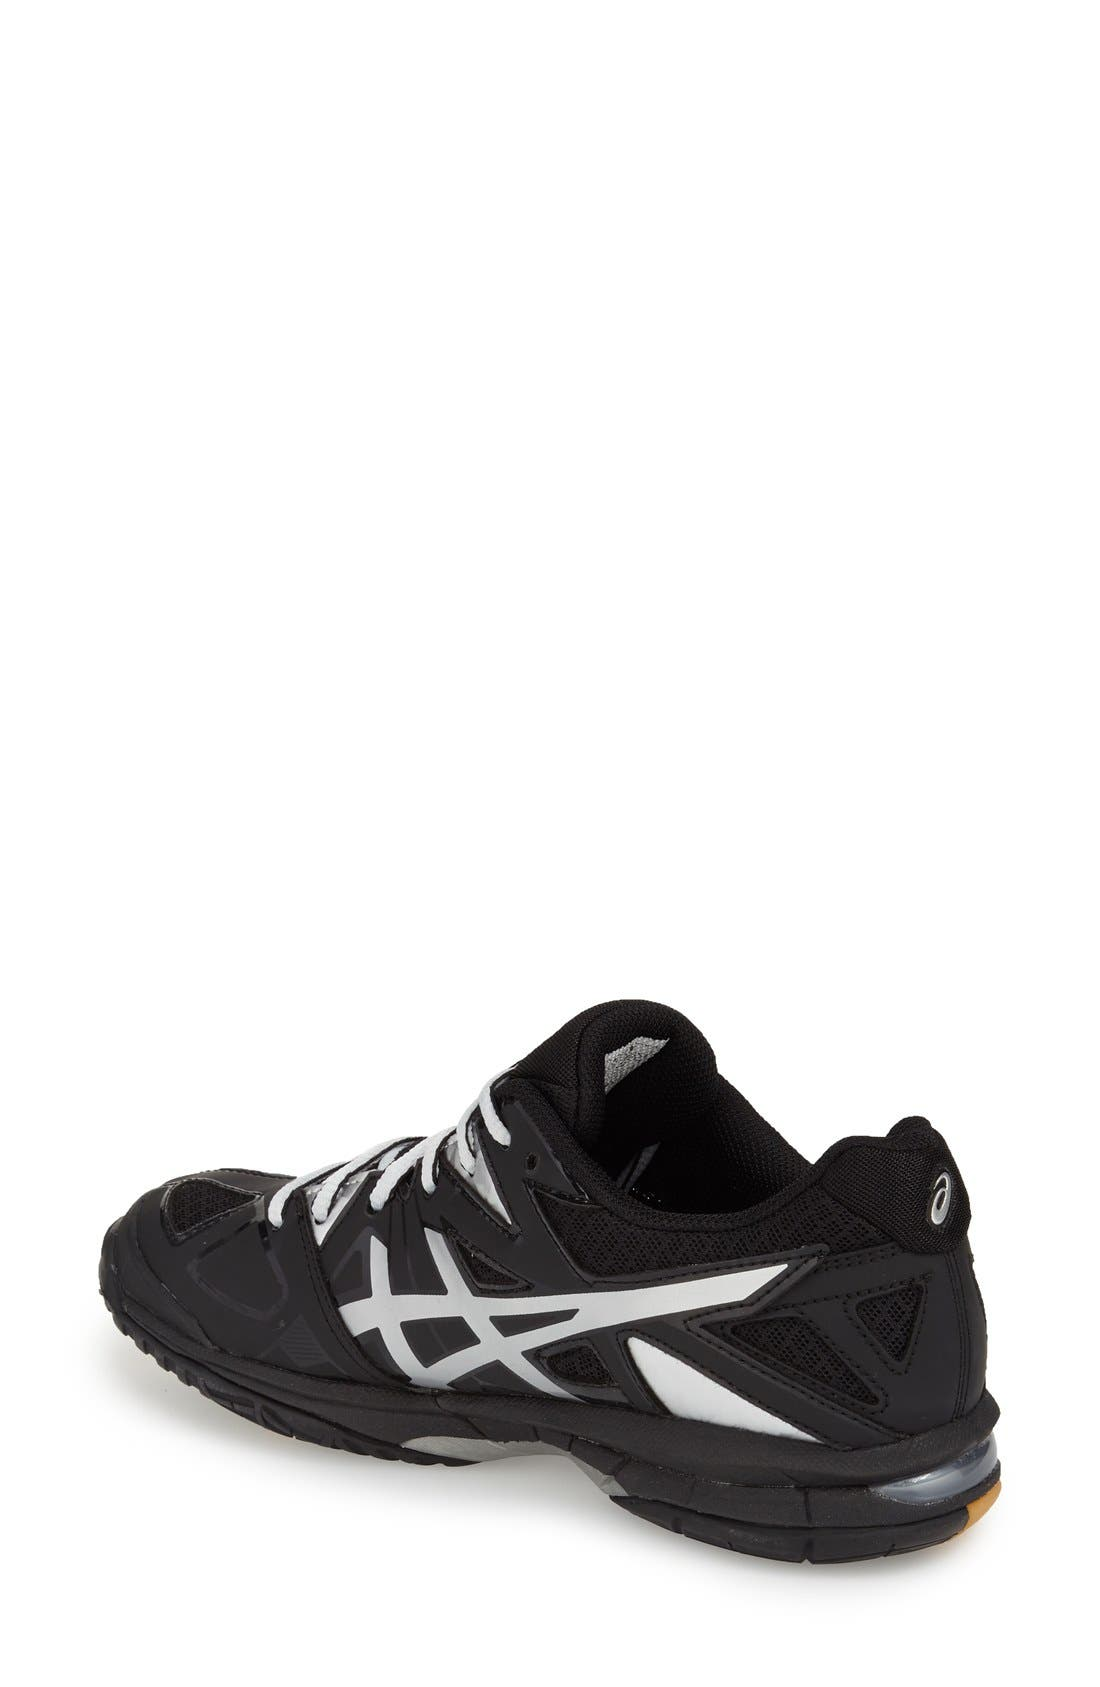 Alternate Image 2  - ASICS® 'GEL-Tactic' Volleyball Shoe (Women)